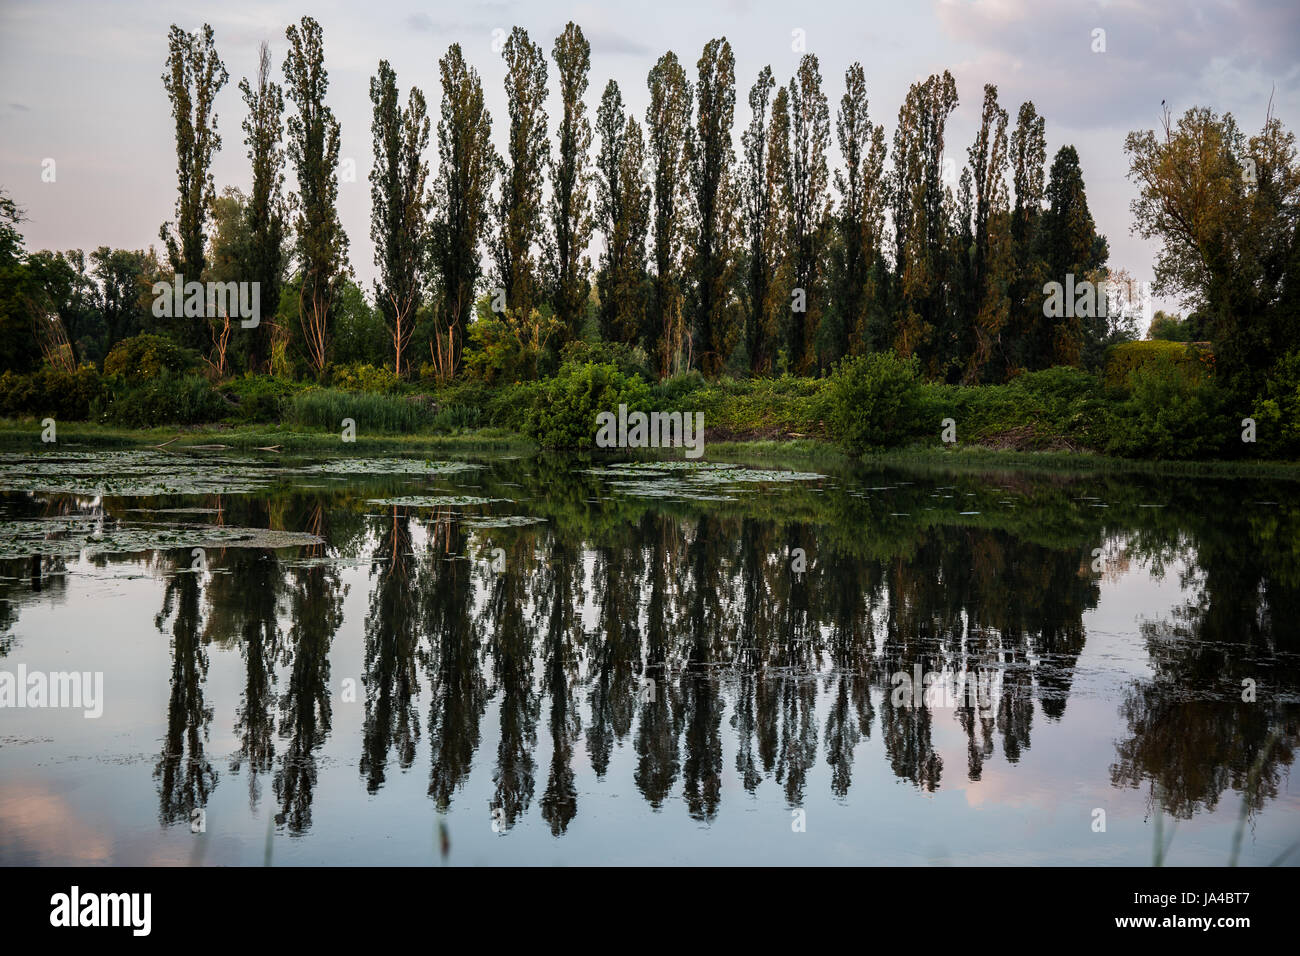 Trees in a row with beautiful reflections on the water - Stock Image